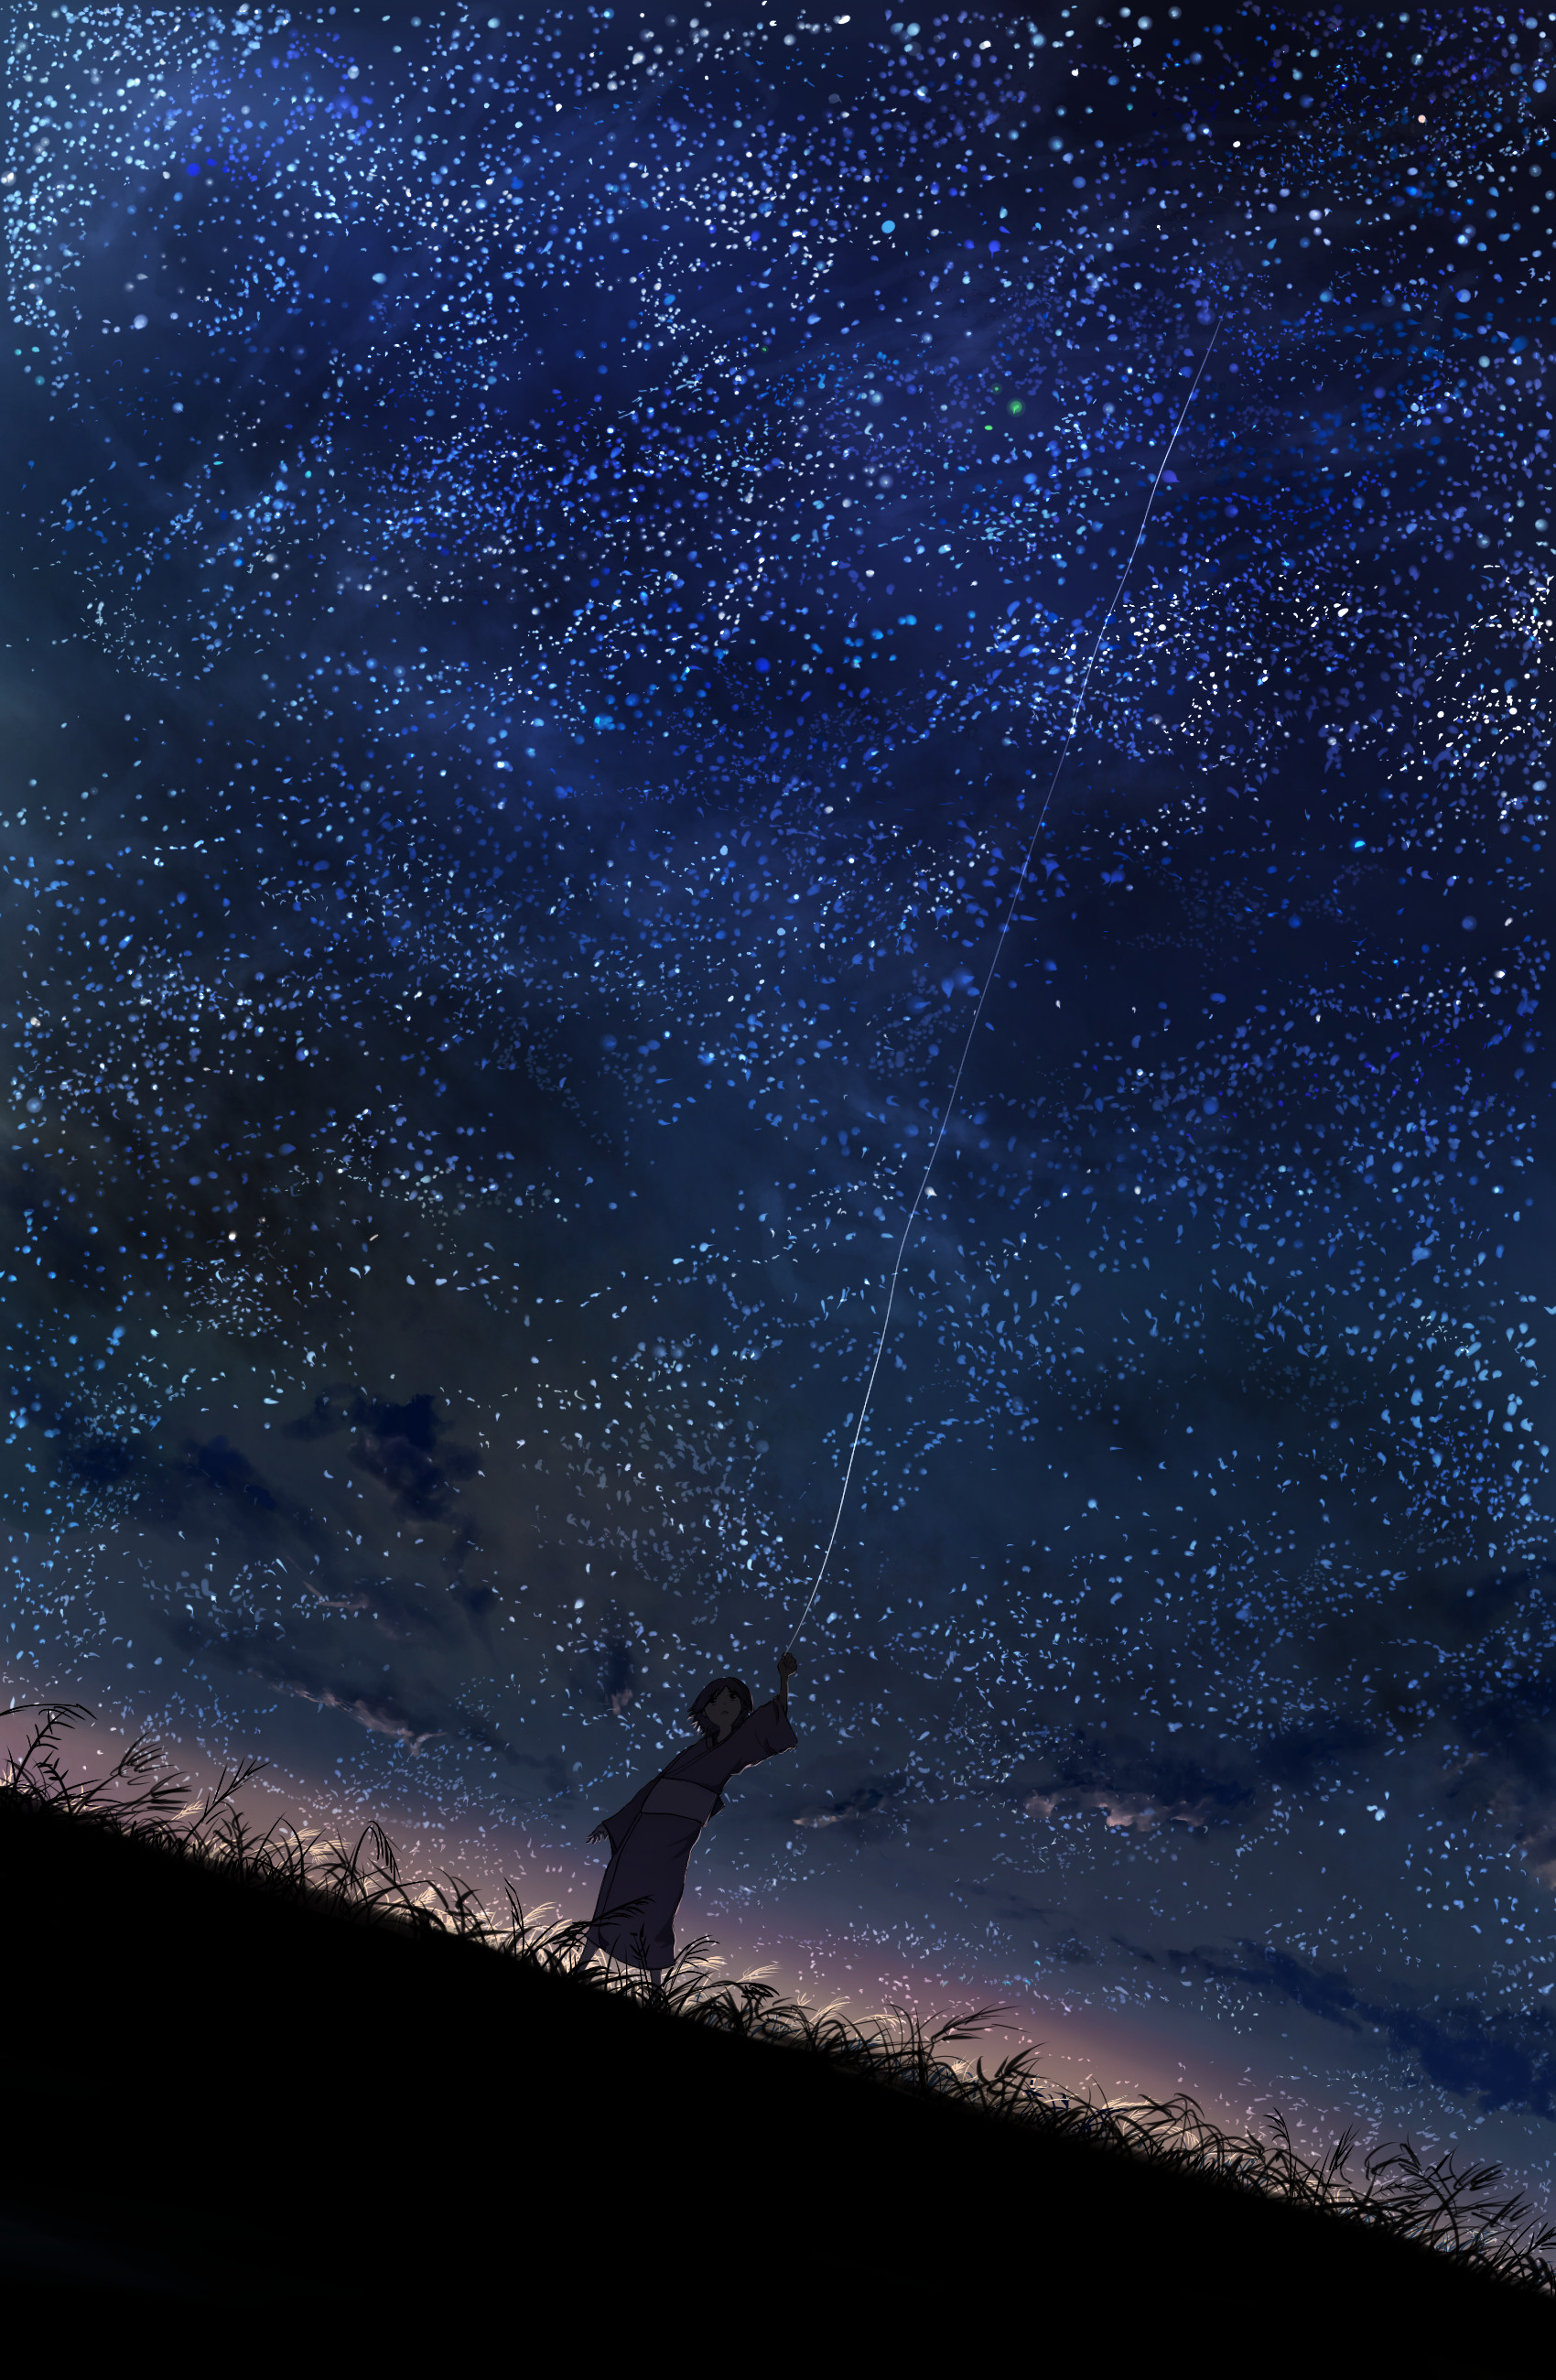 Res: 1700x2600, Fuki (Mushishi) · download Fuki (Mushishi) image